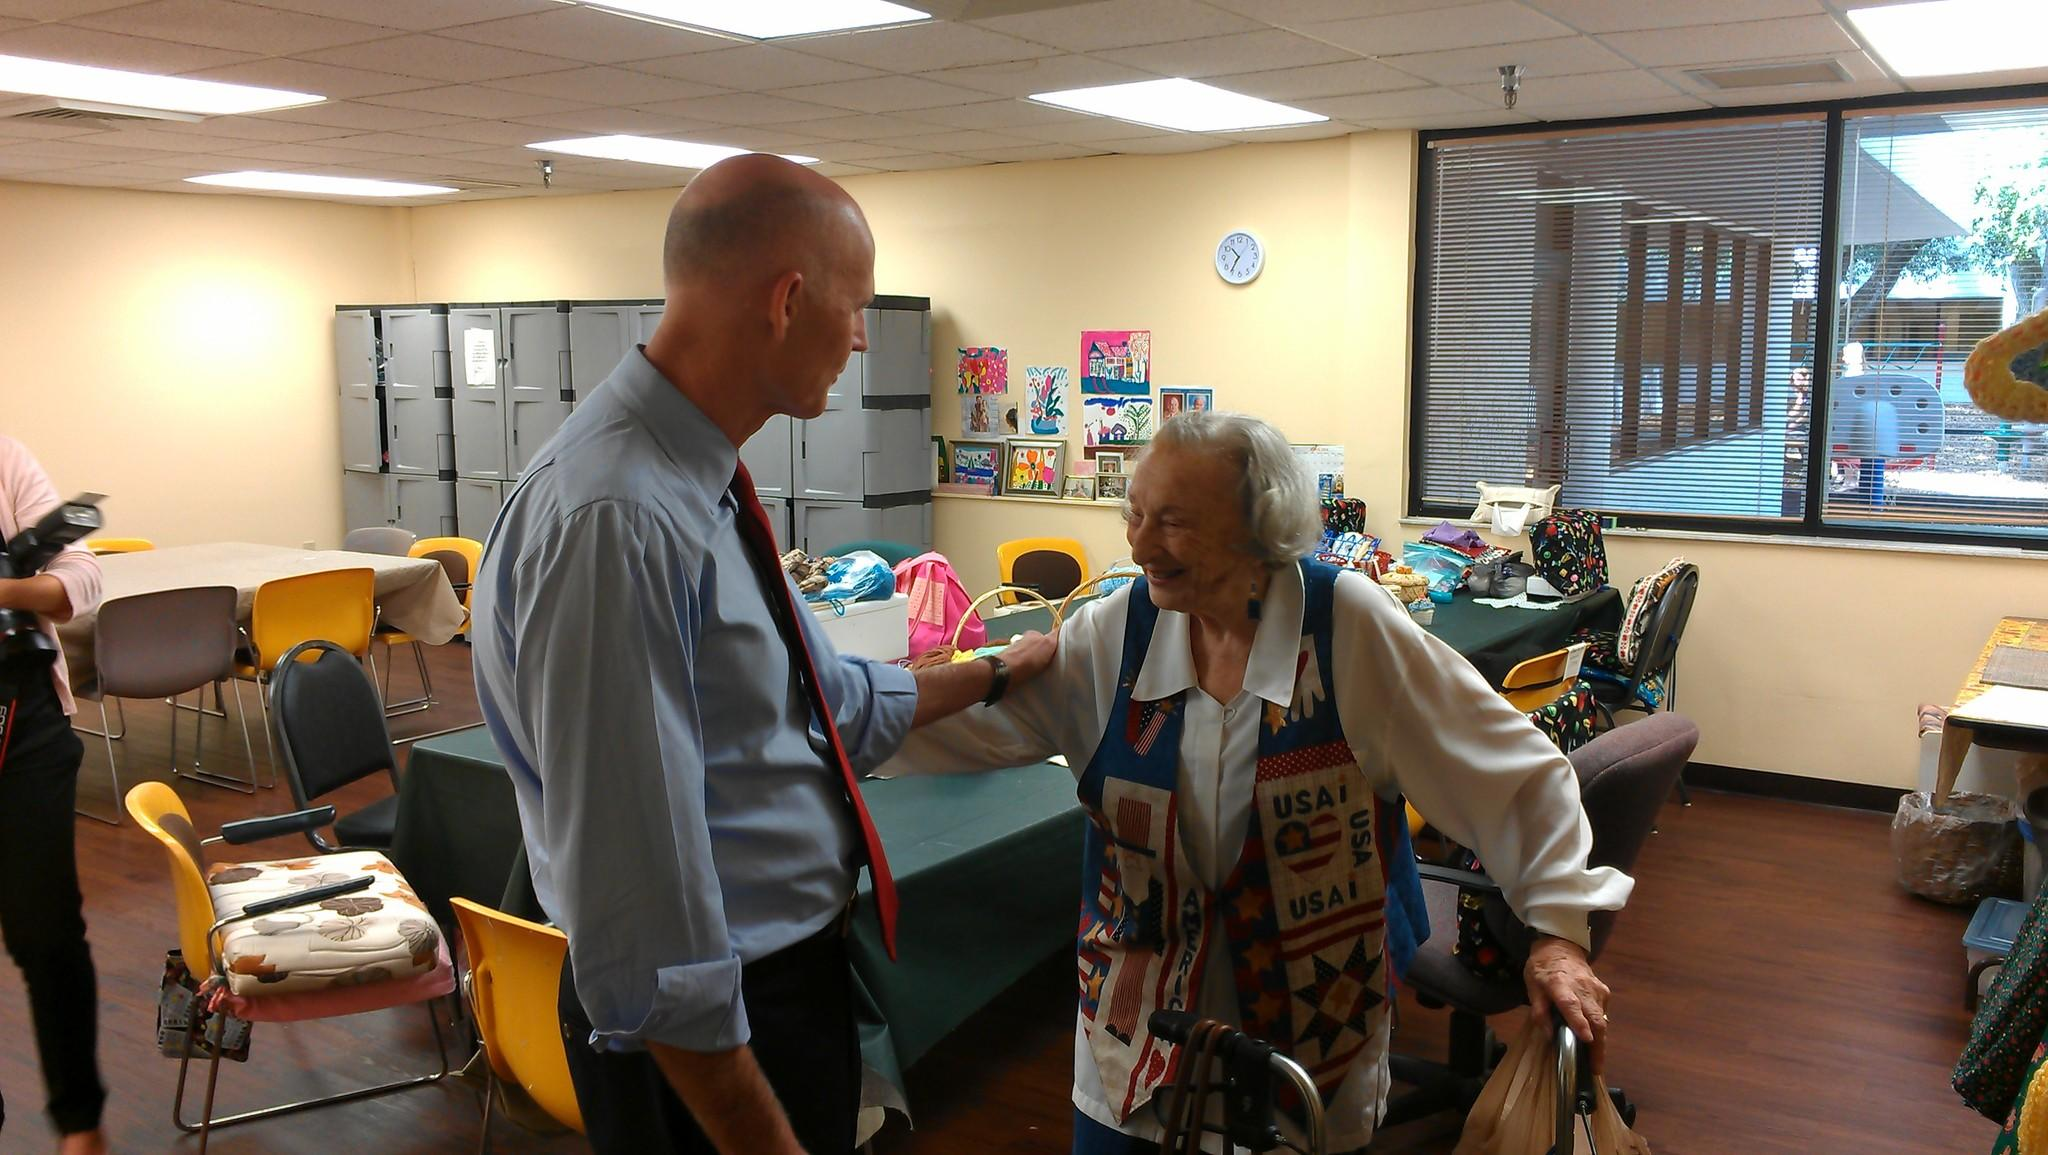 Gov. Rick Scott introduces himself to Hedy Ziegelman, 93, of Delray Beach during a visit to the Volen Center in Boca Raton on Tuesday, April 29. (Photo by Anthony Man)